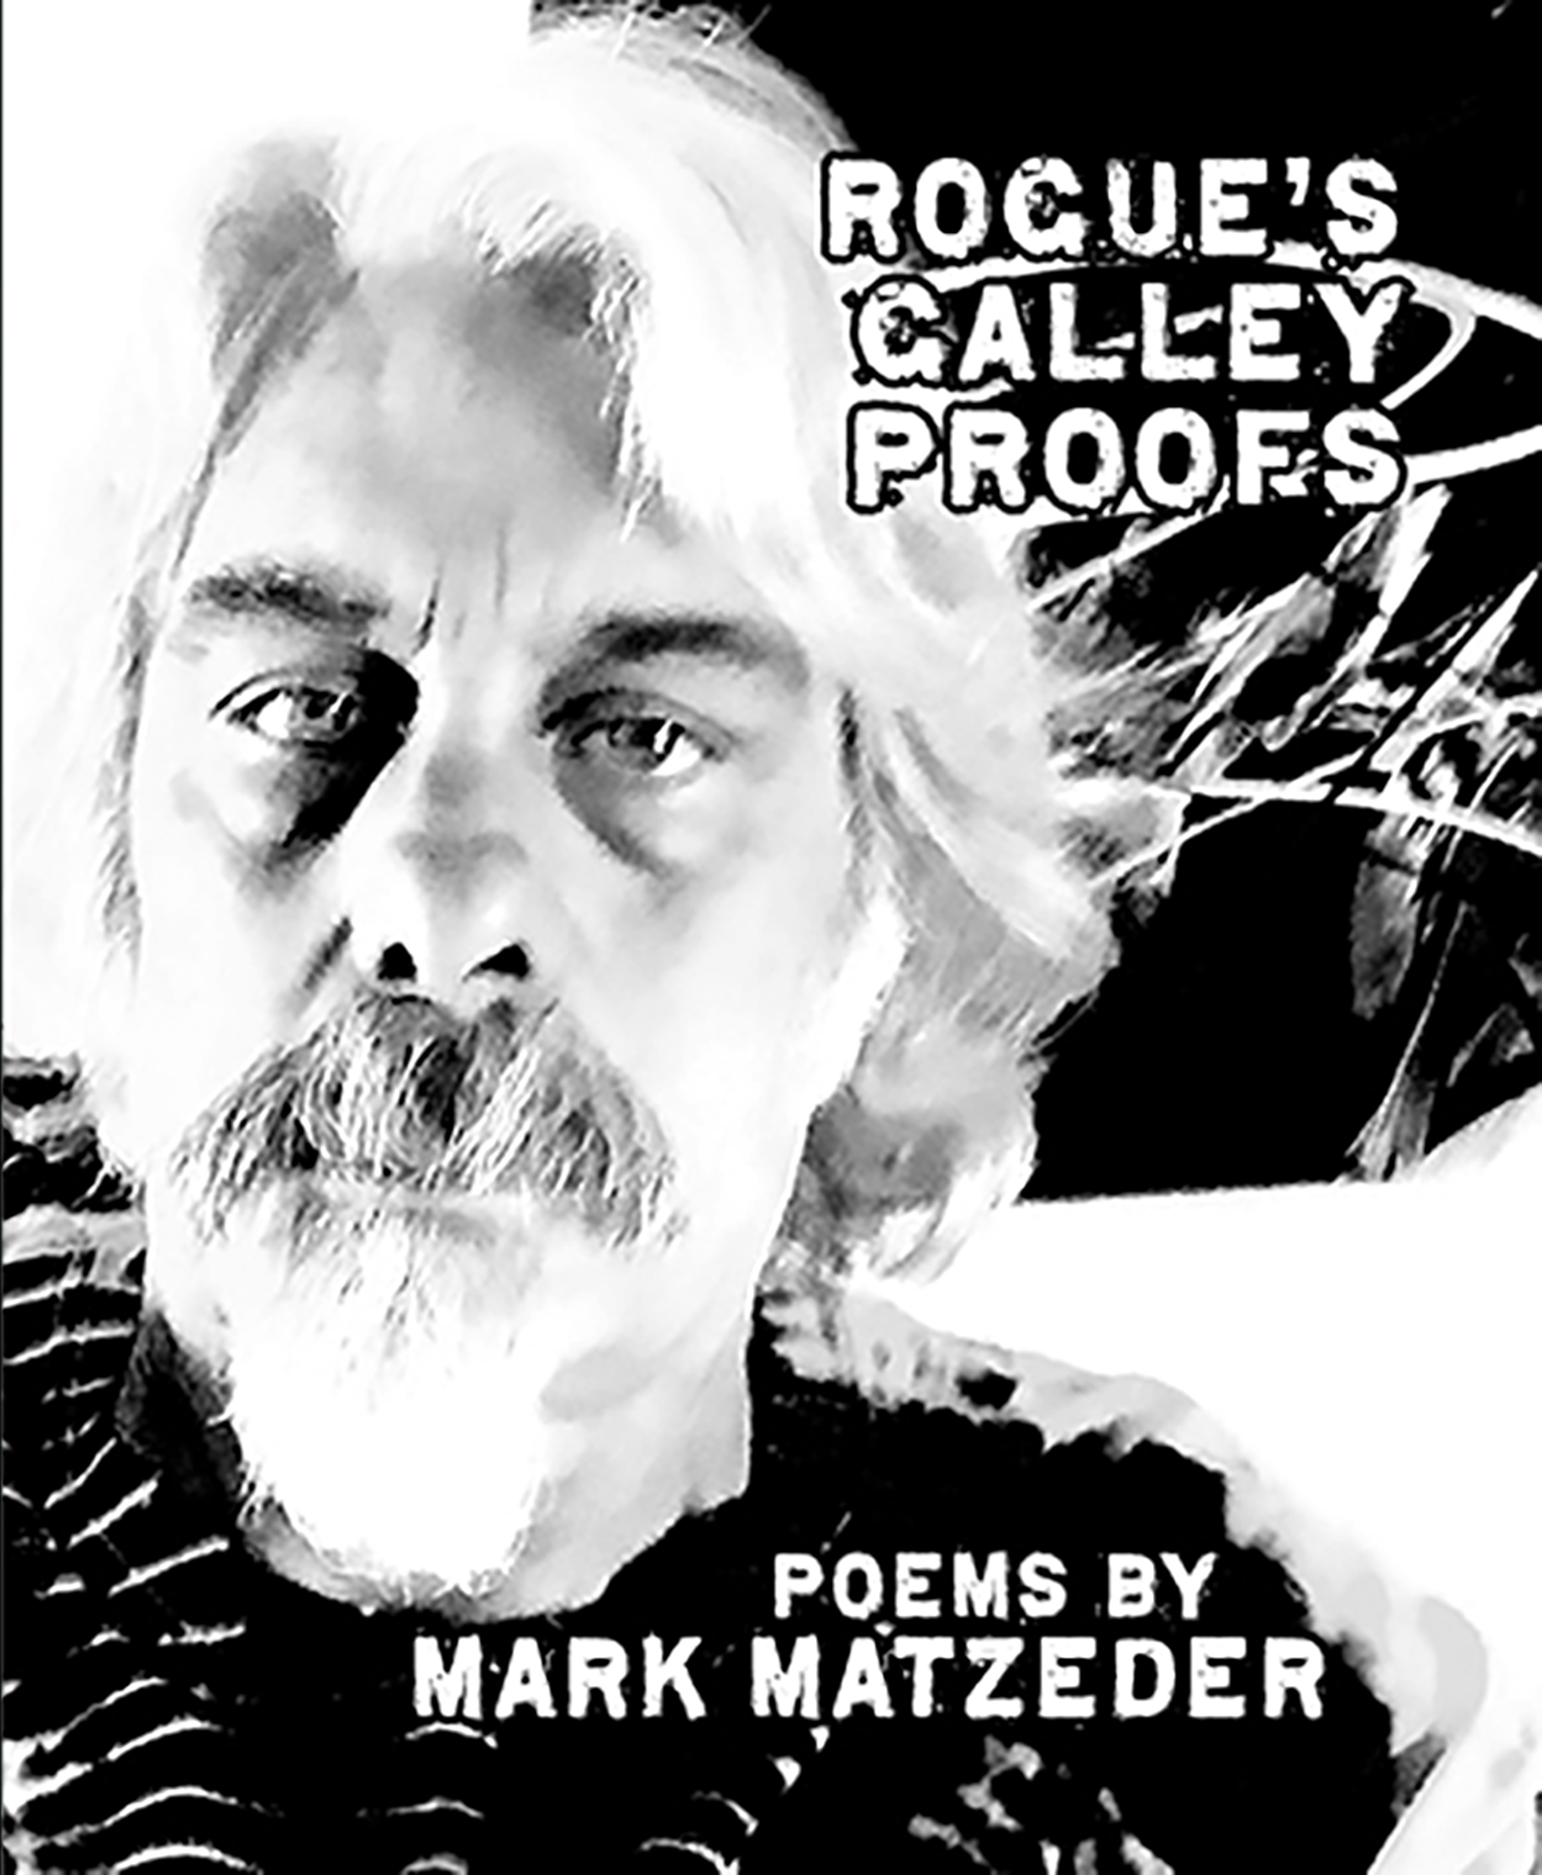 Rogue's Galley Proofs